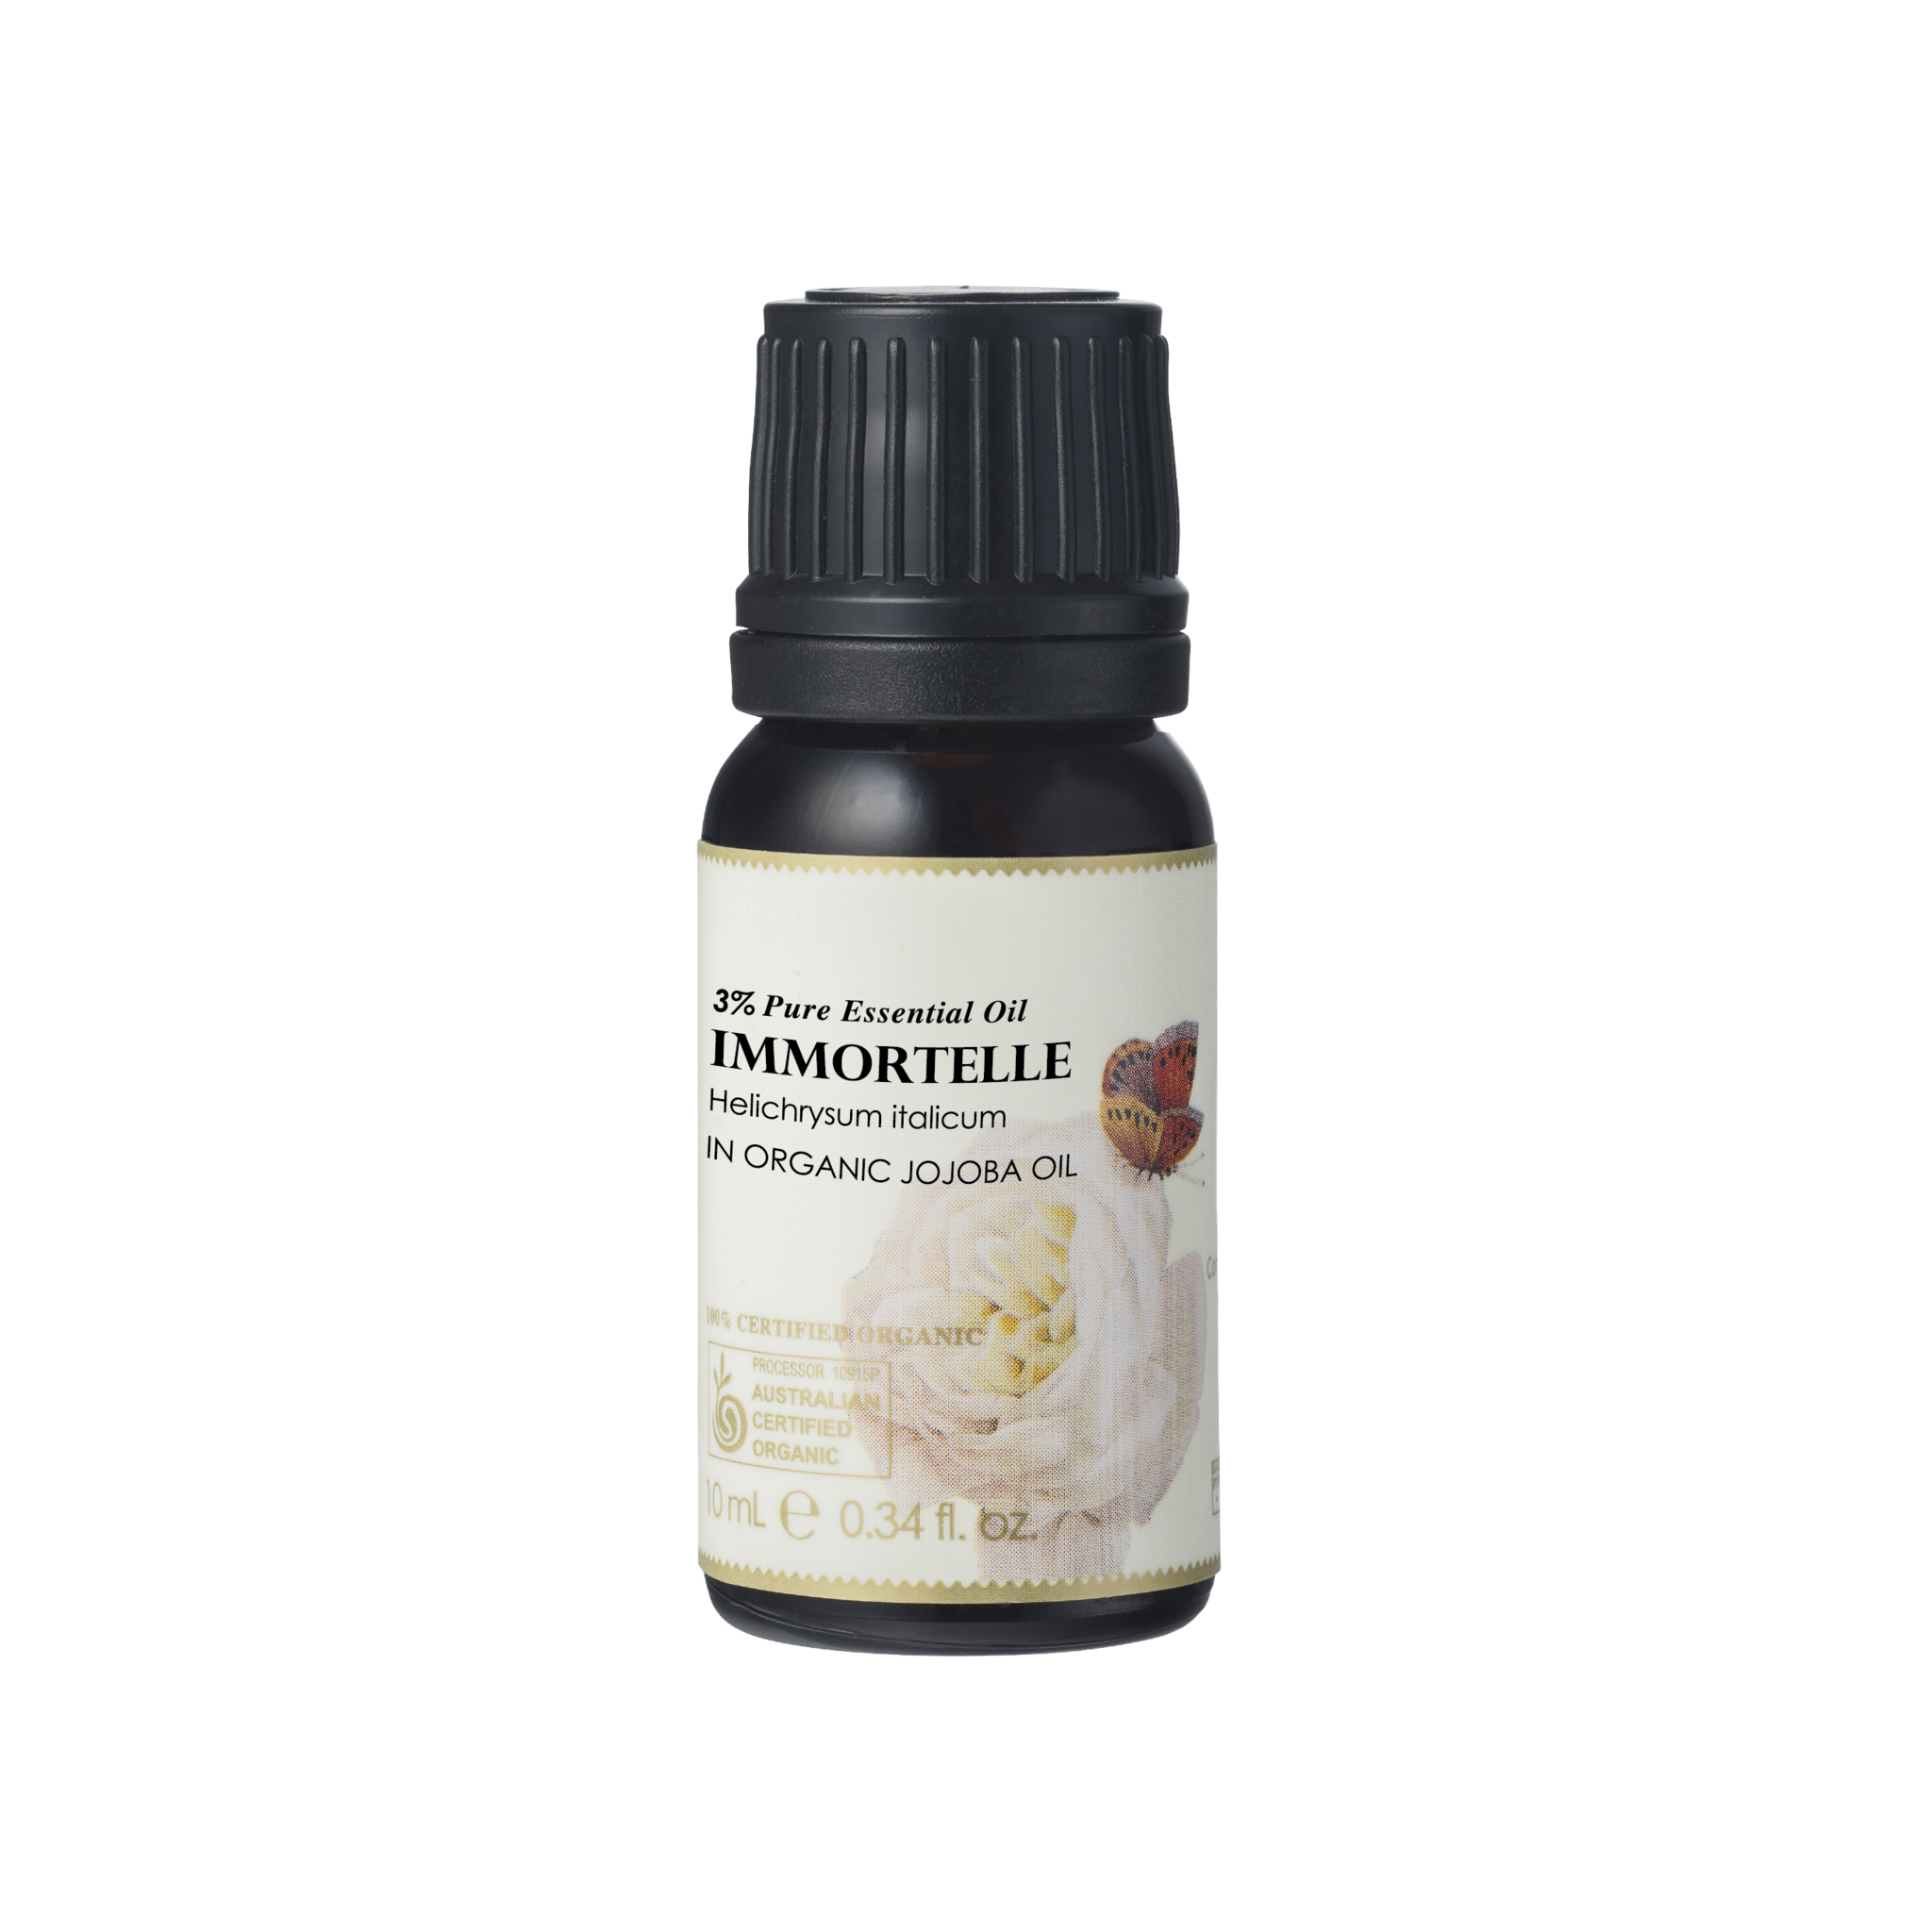 3% Immortelle Essential Oil